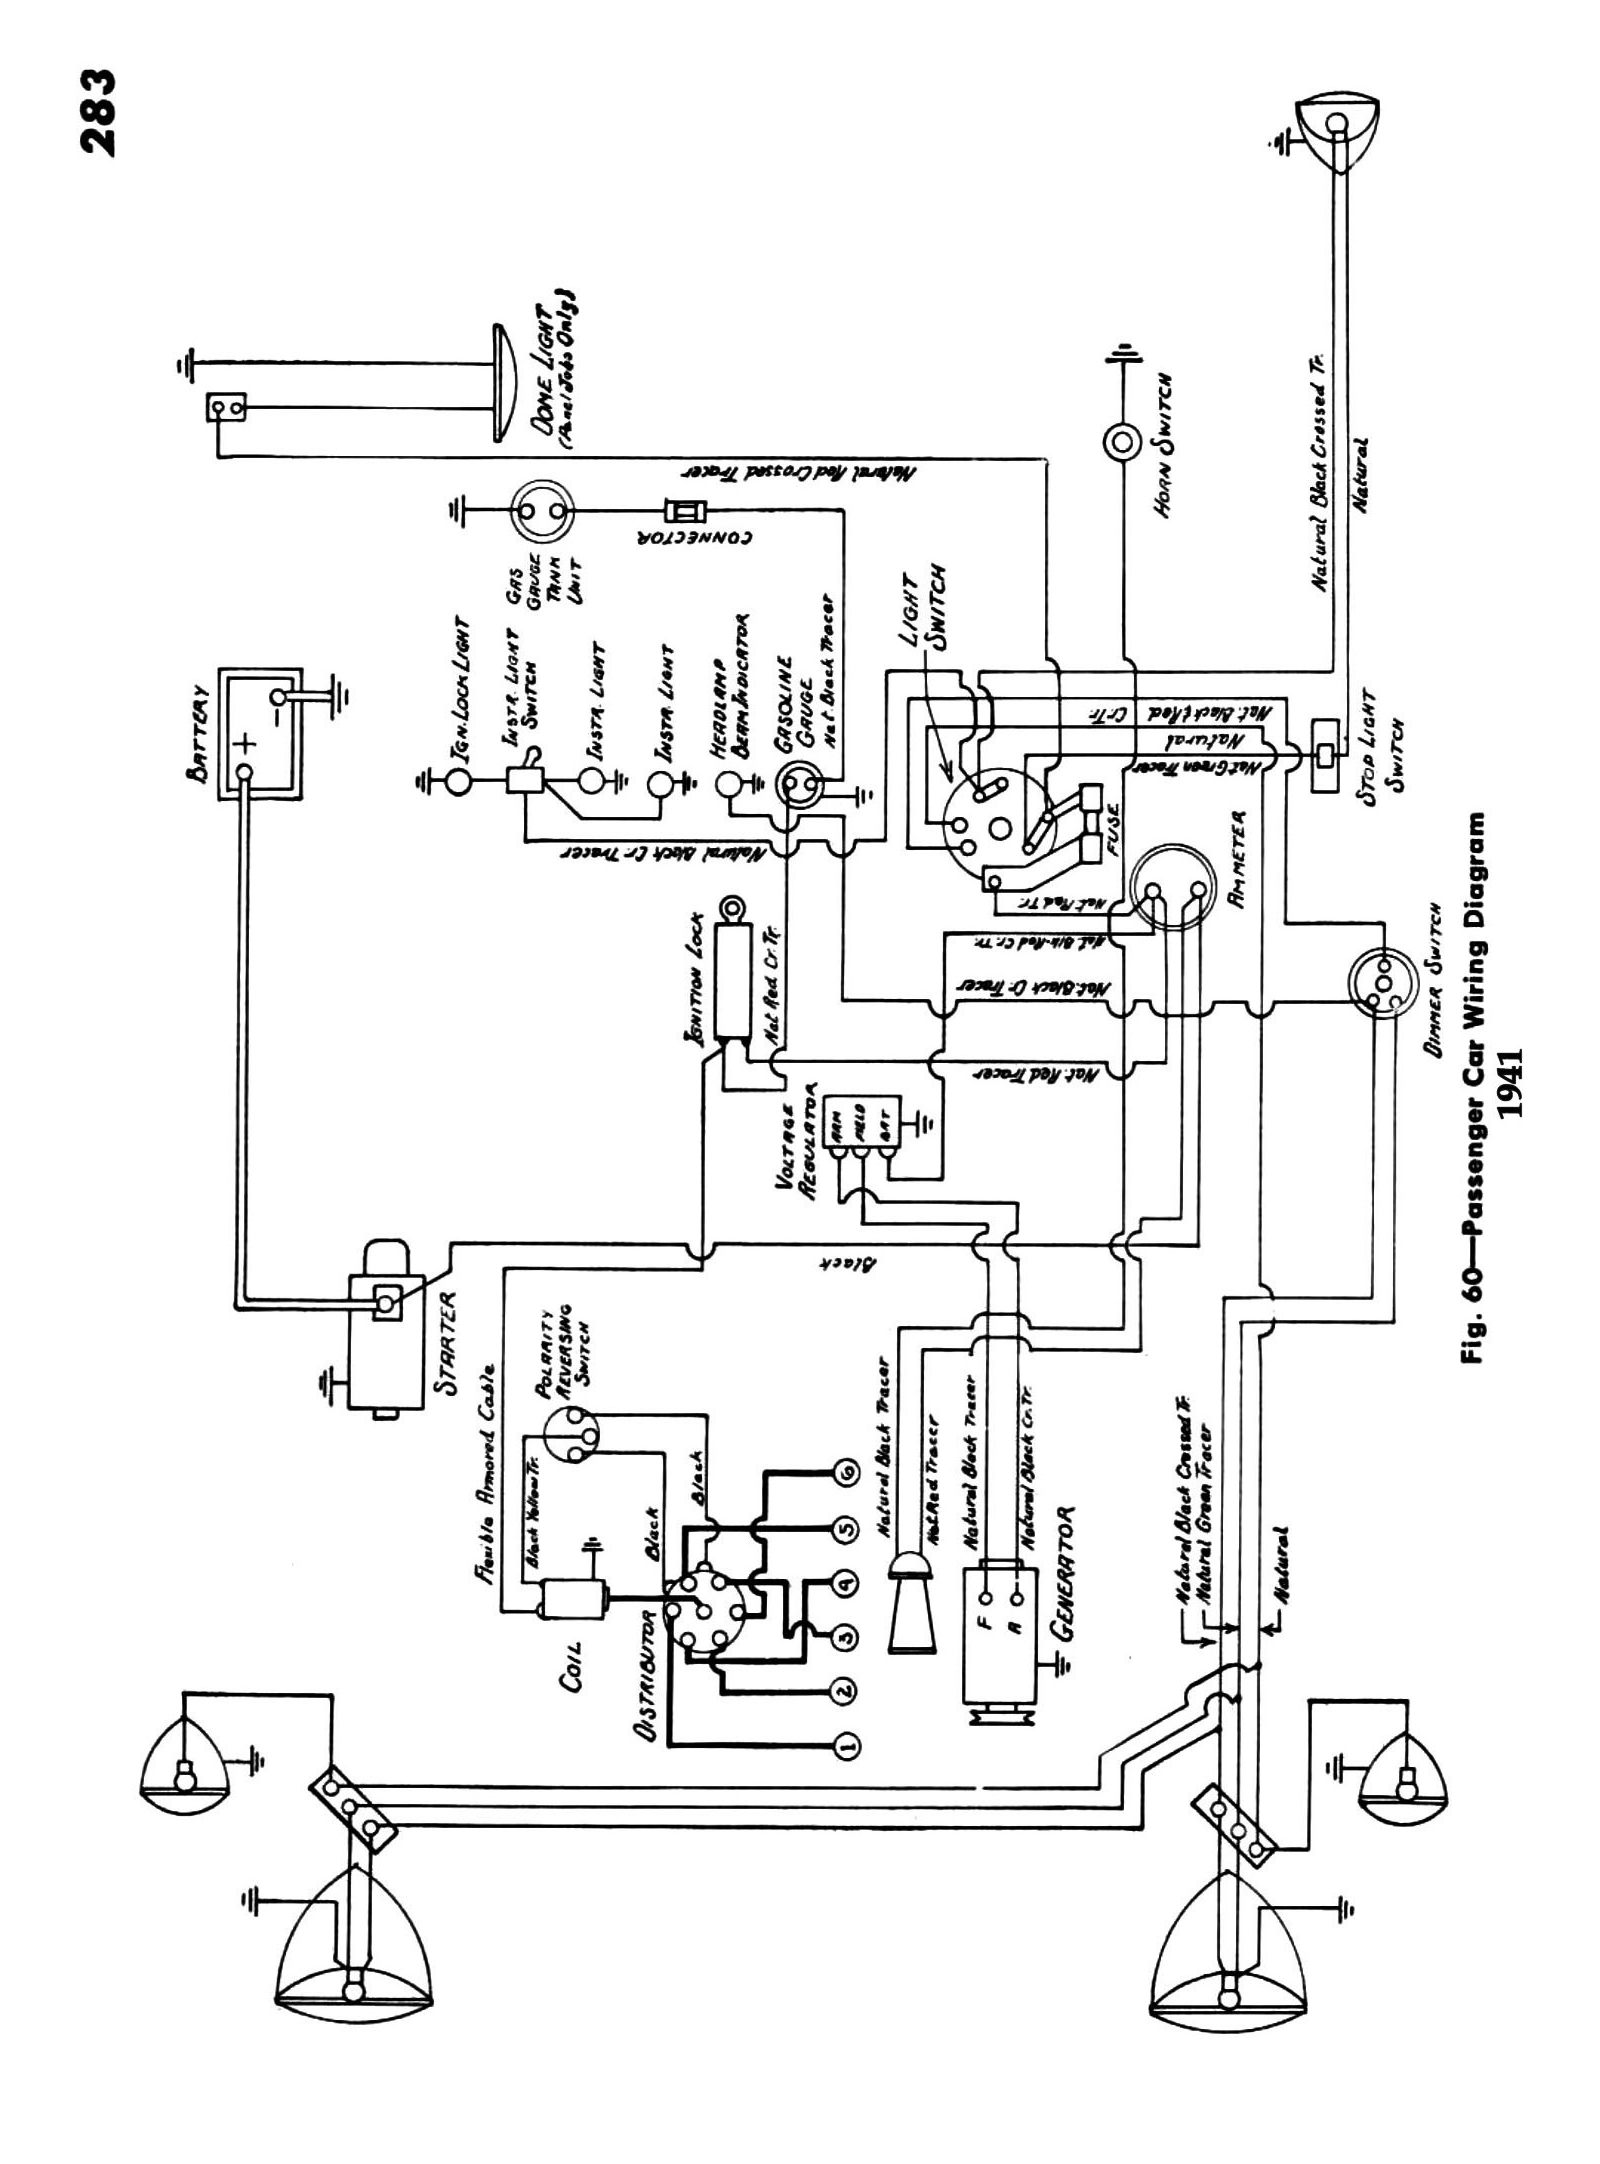 41csm283 chevy wiring diagrams simple chevy tbi wiring harness diagram at mifinder.co